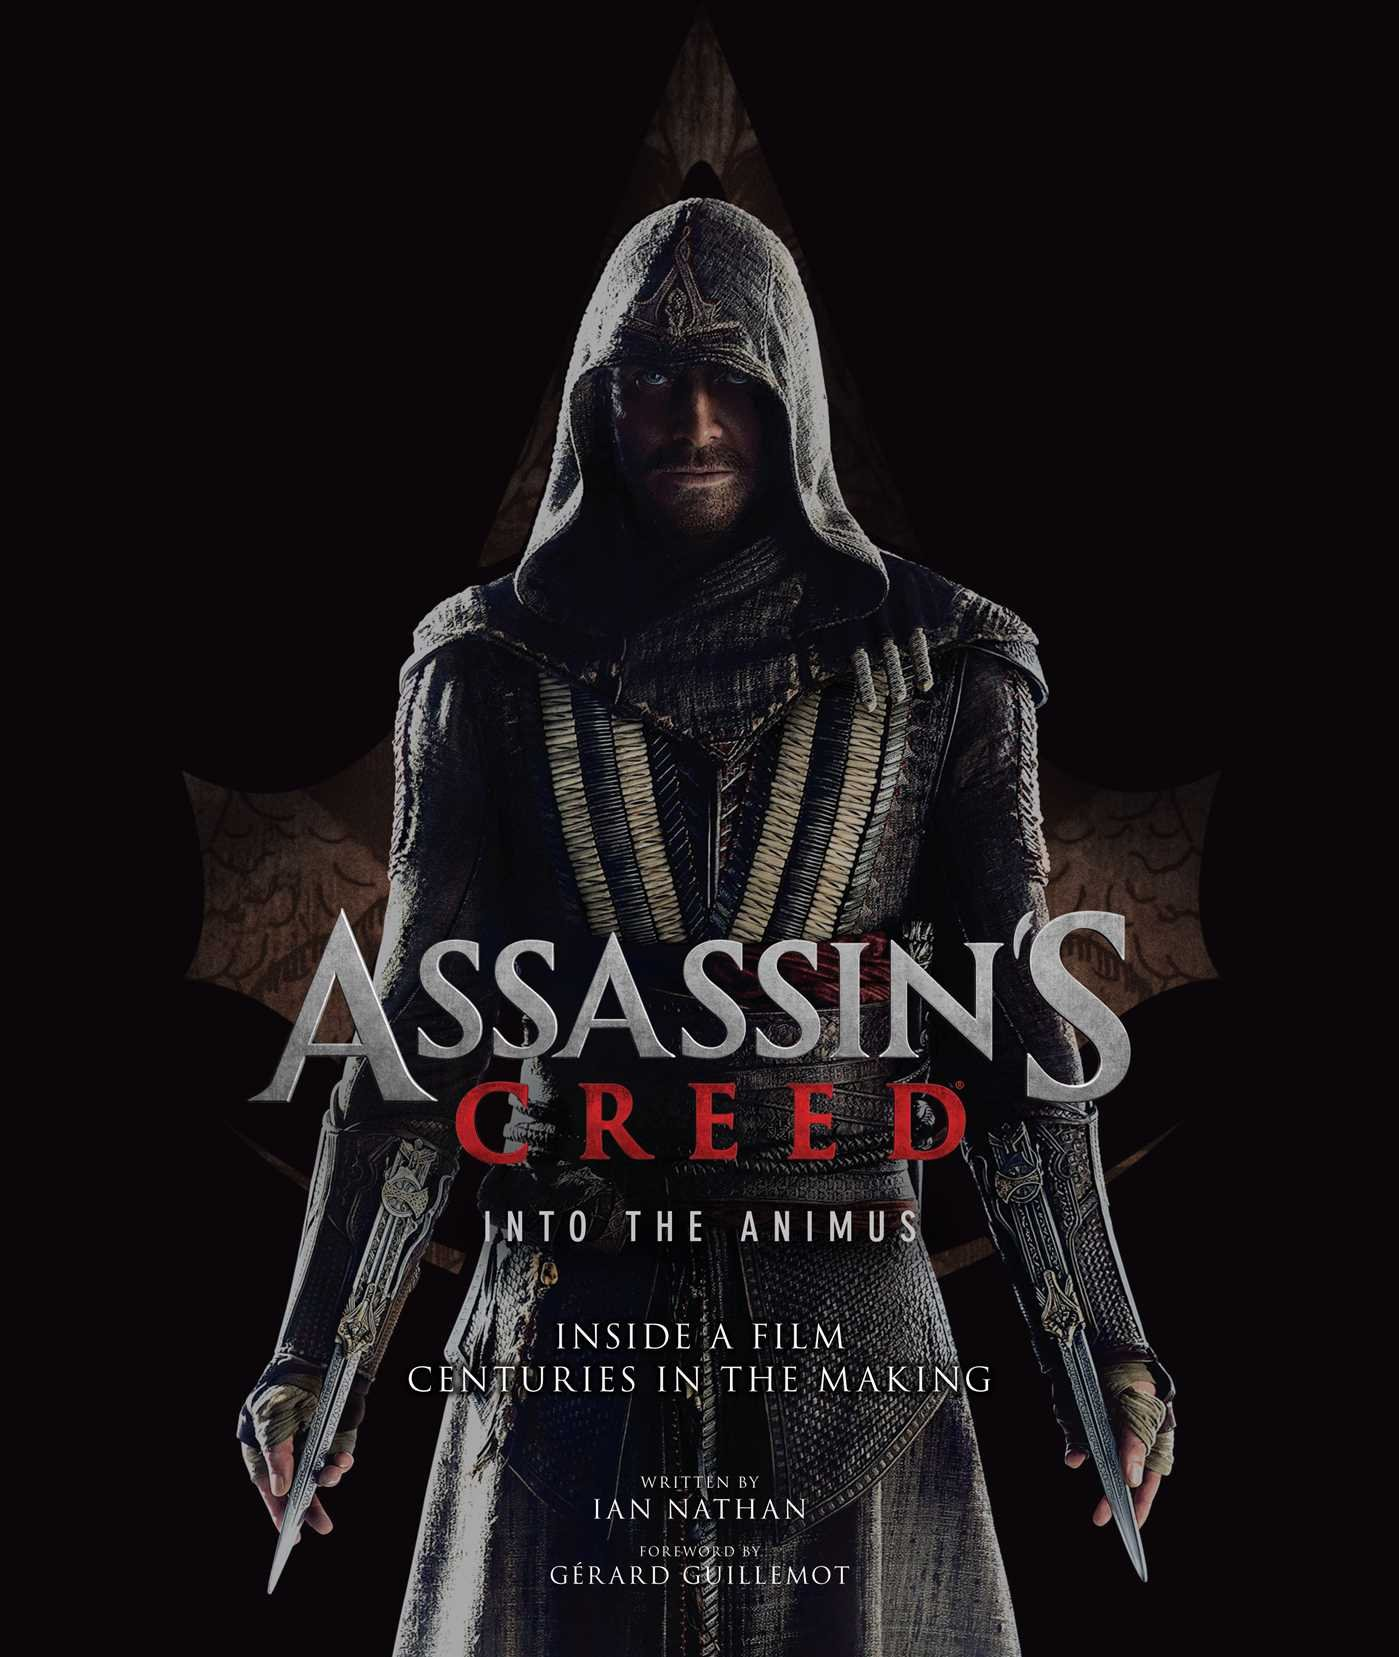 Assassin S Creed Into The Animus Nathan Ian Guillemot Gerard